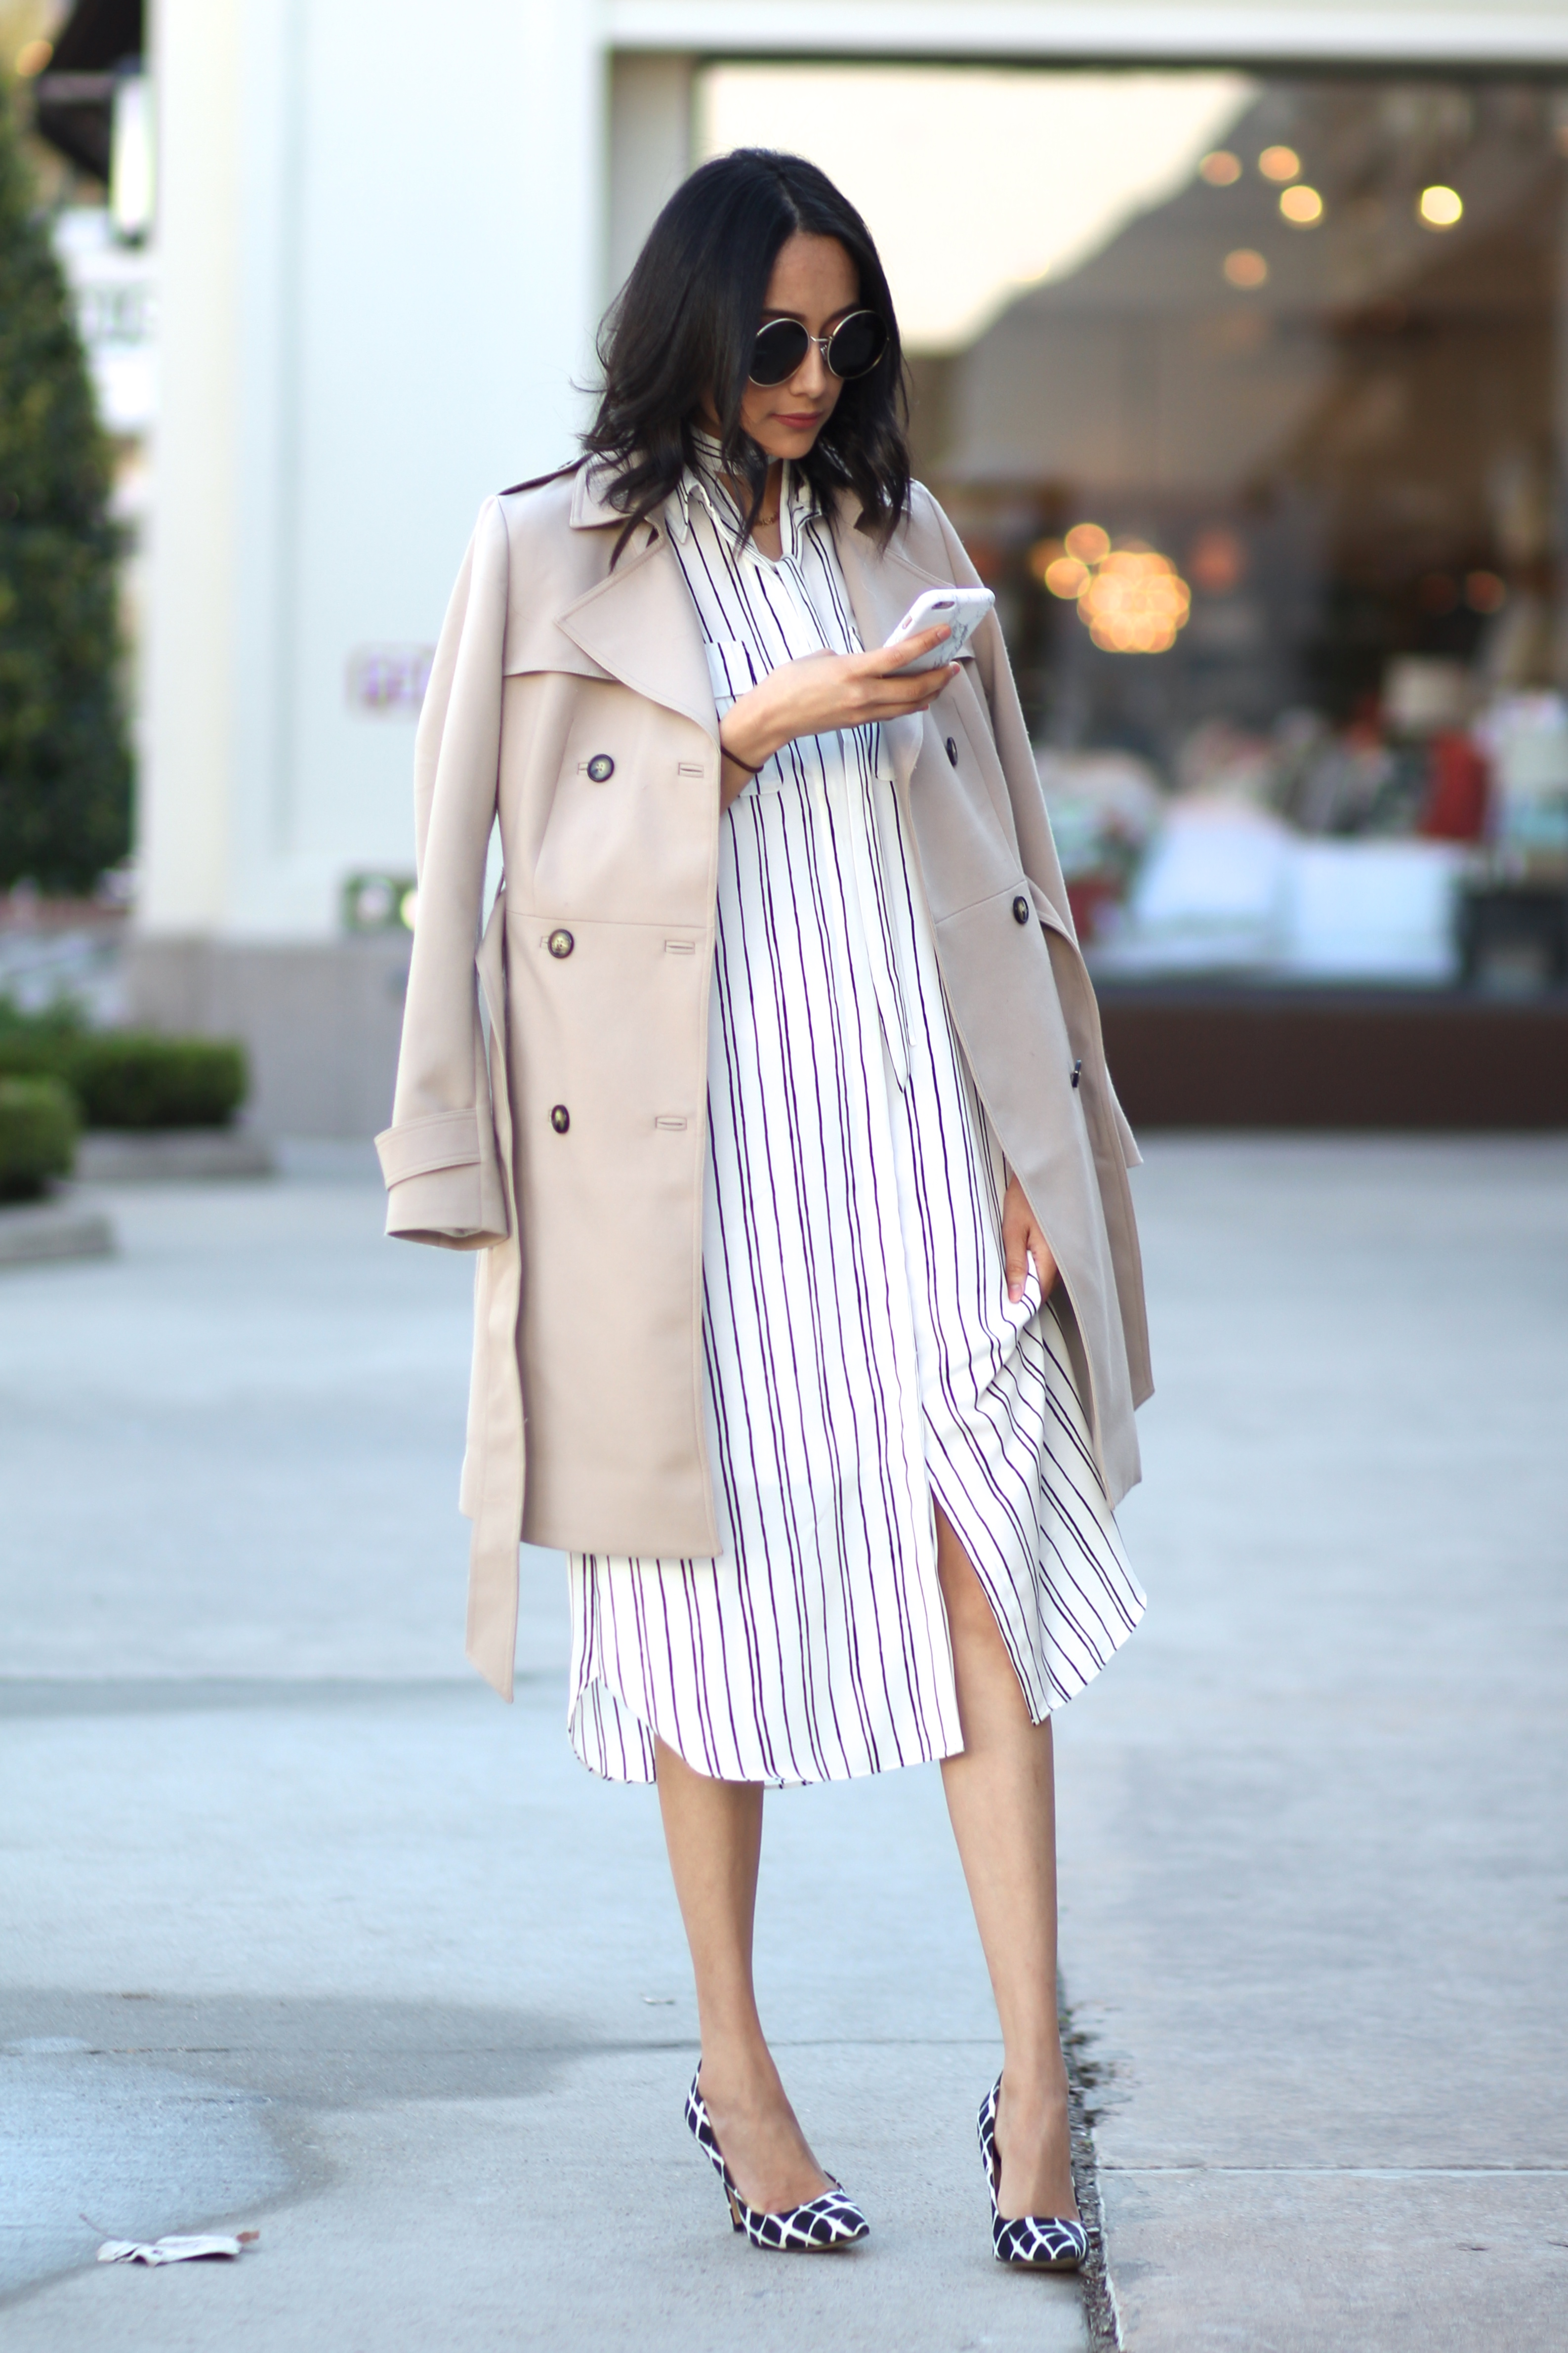 pinstripe dress, trench coat, and plaid pumps